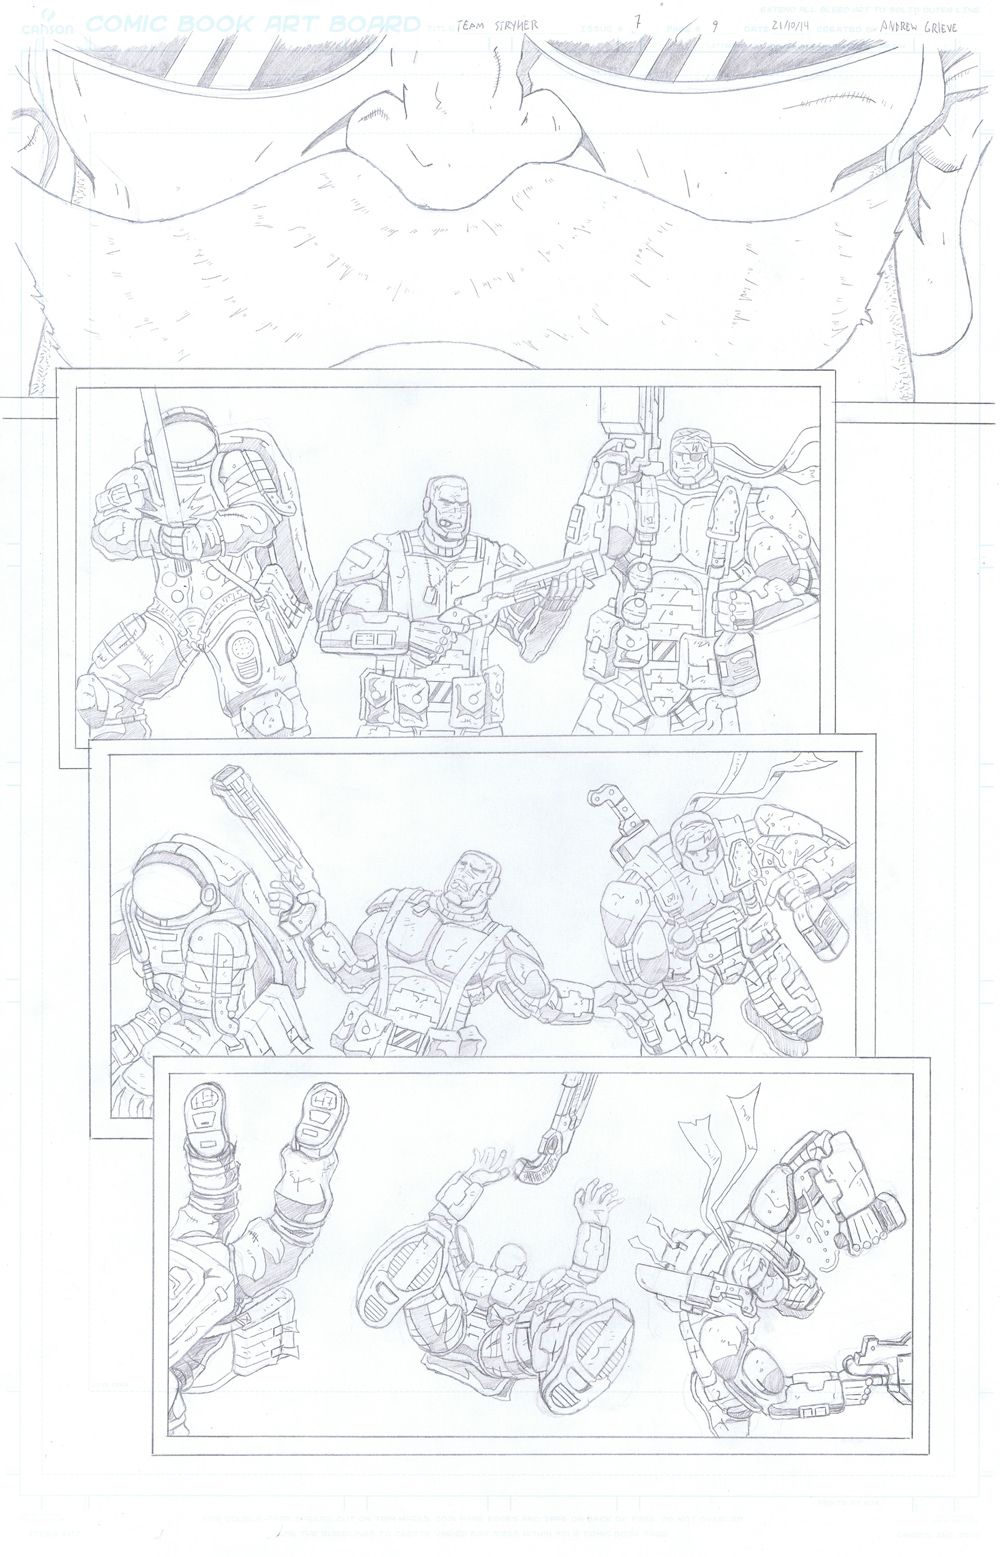 MISSION 007: PAGE 09 PENCIL